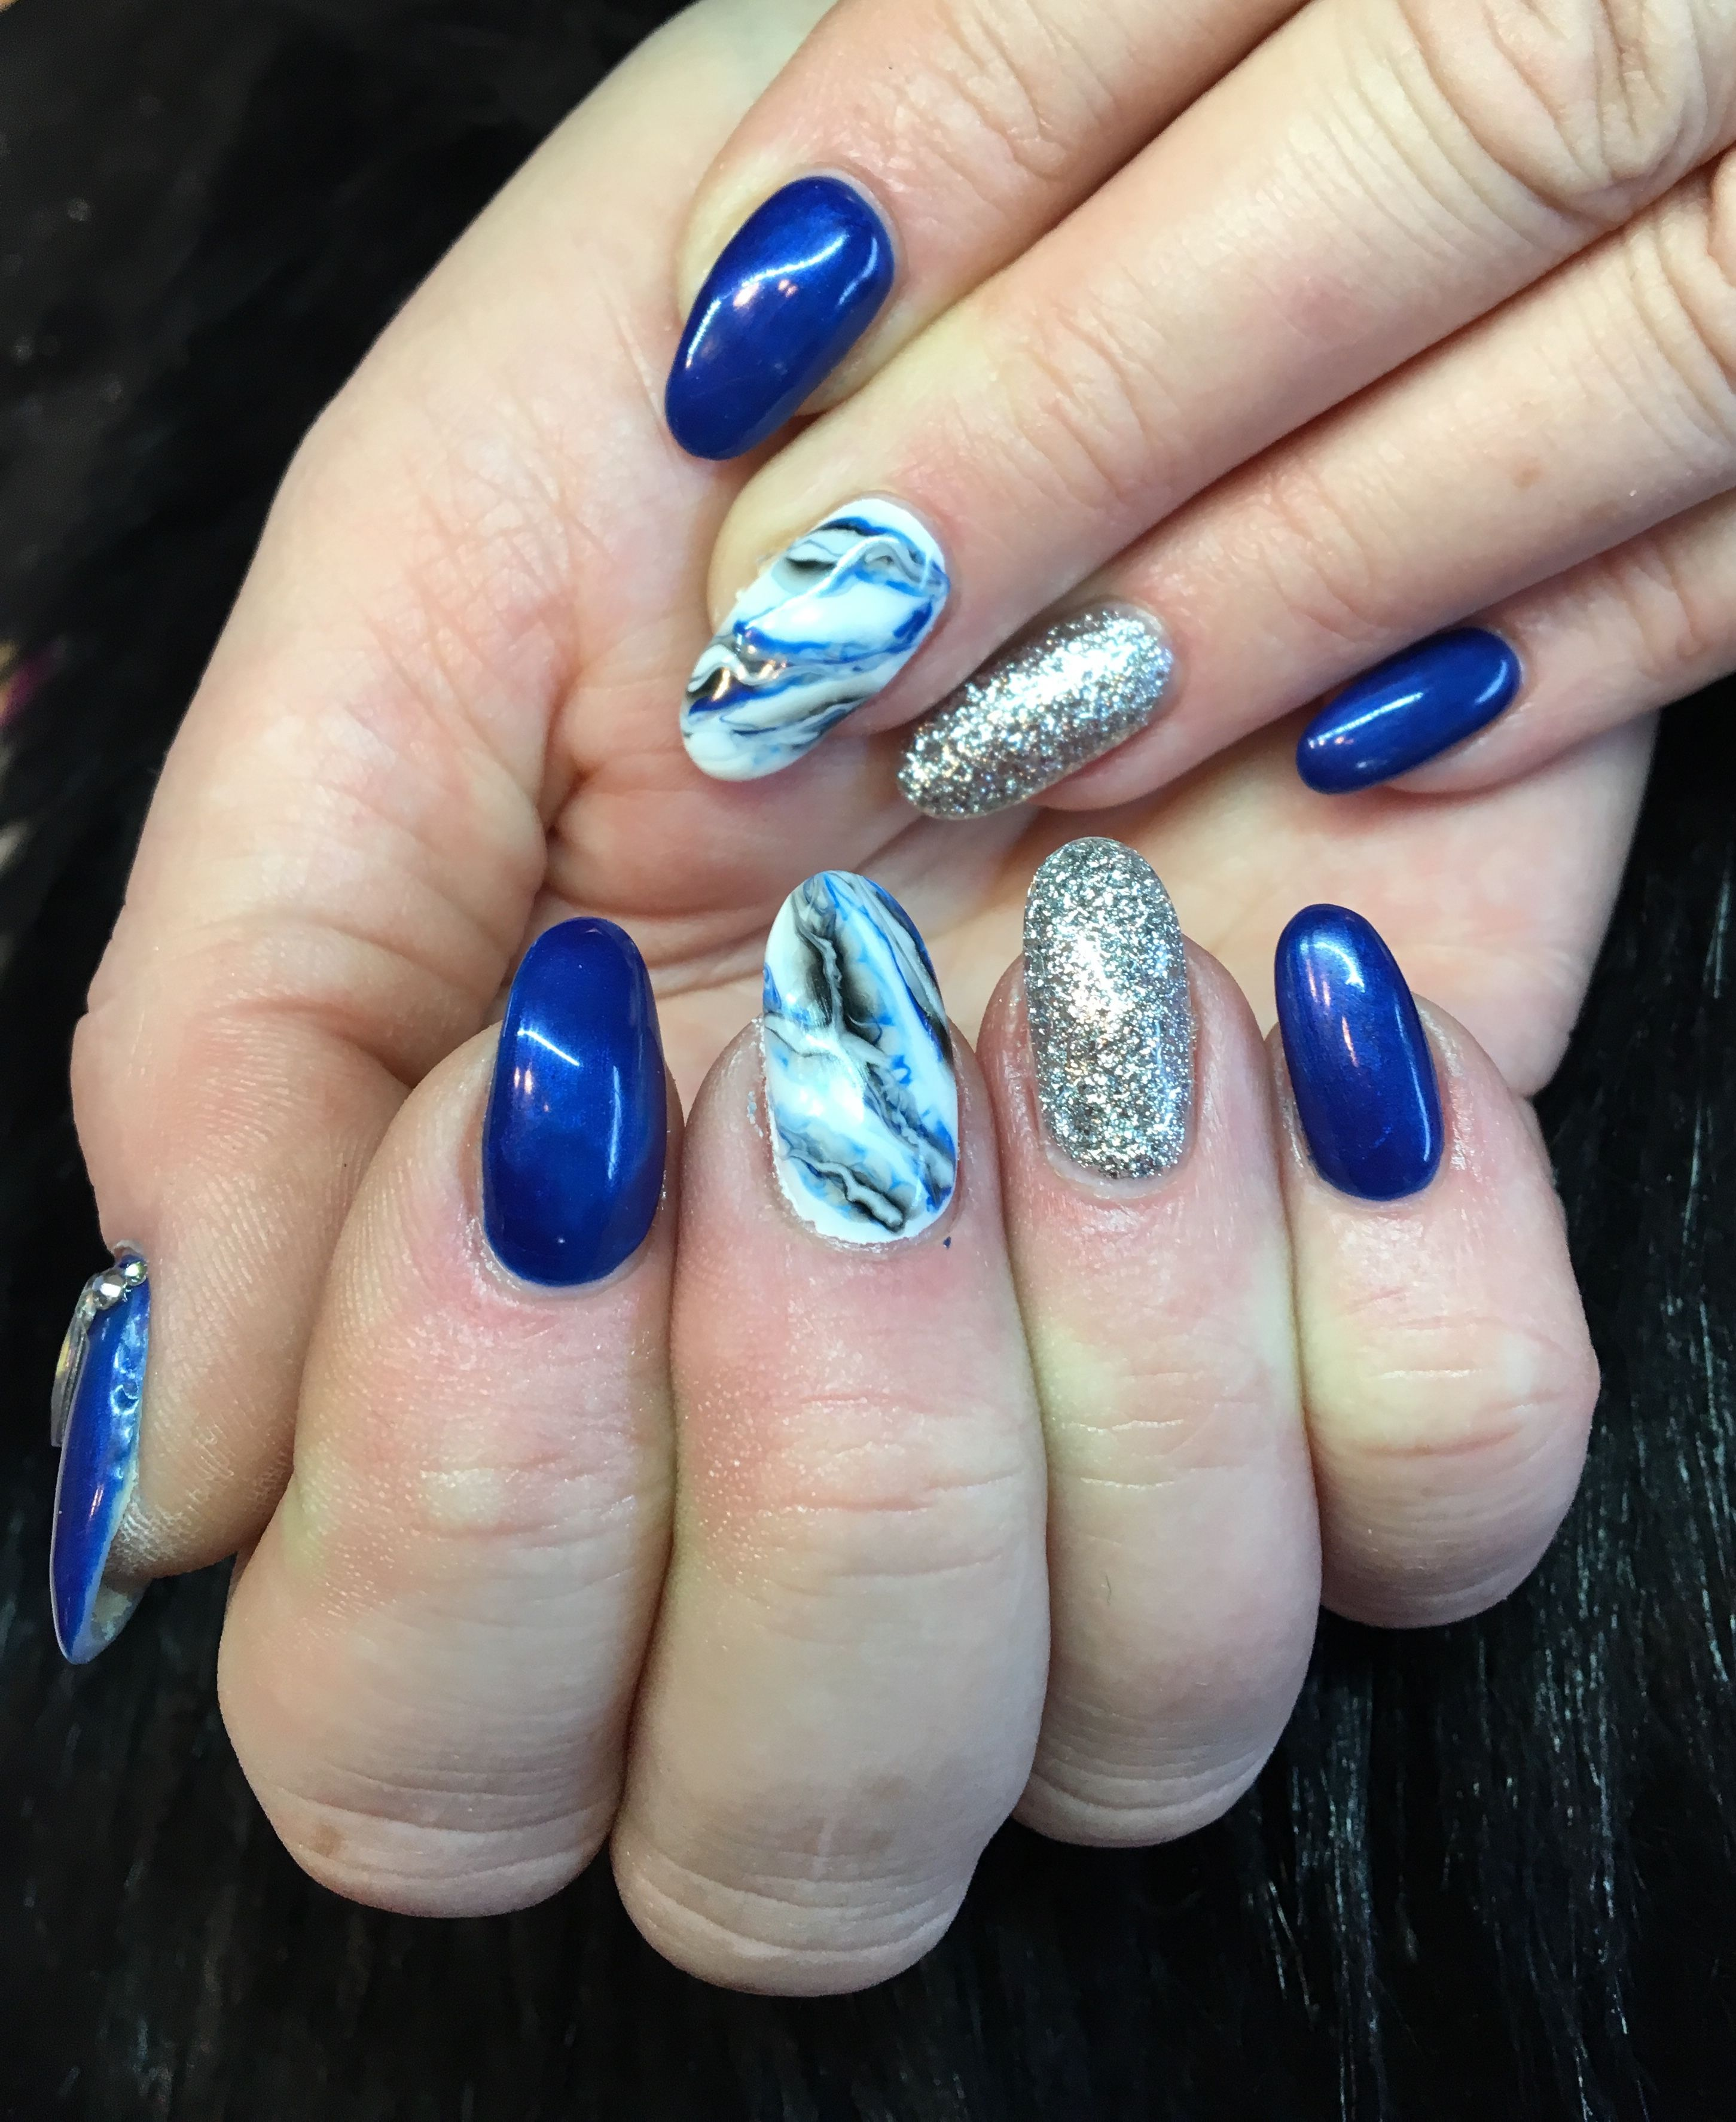 Blue And Silver Nails With Blue Marble Gel Nail Design Blue Nail Designs Blue And Silver Nails Nail Designs